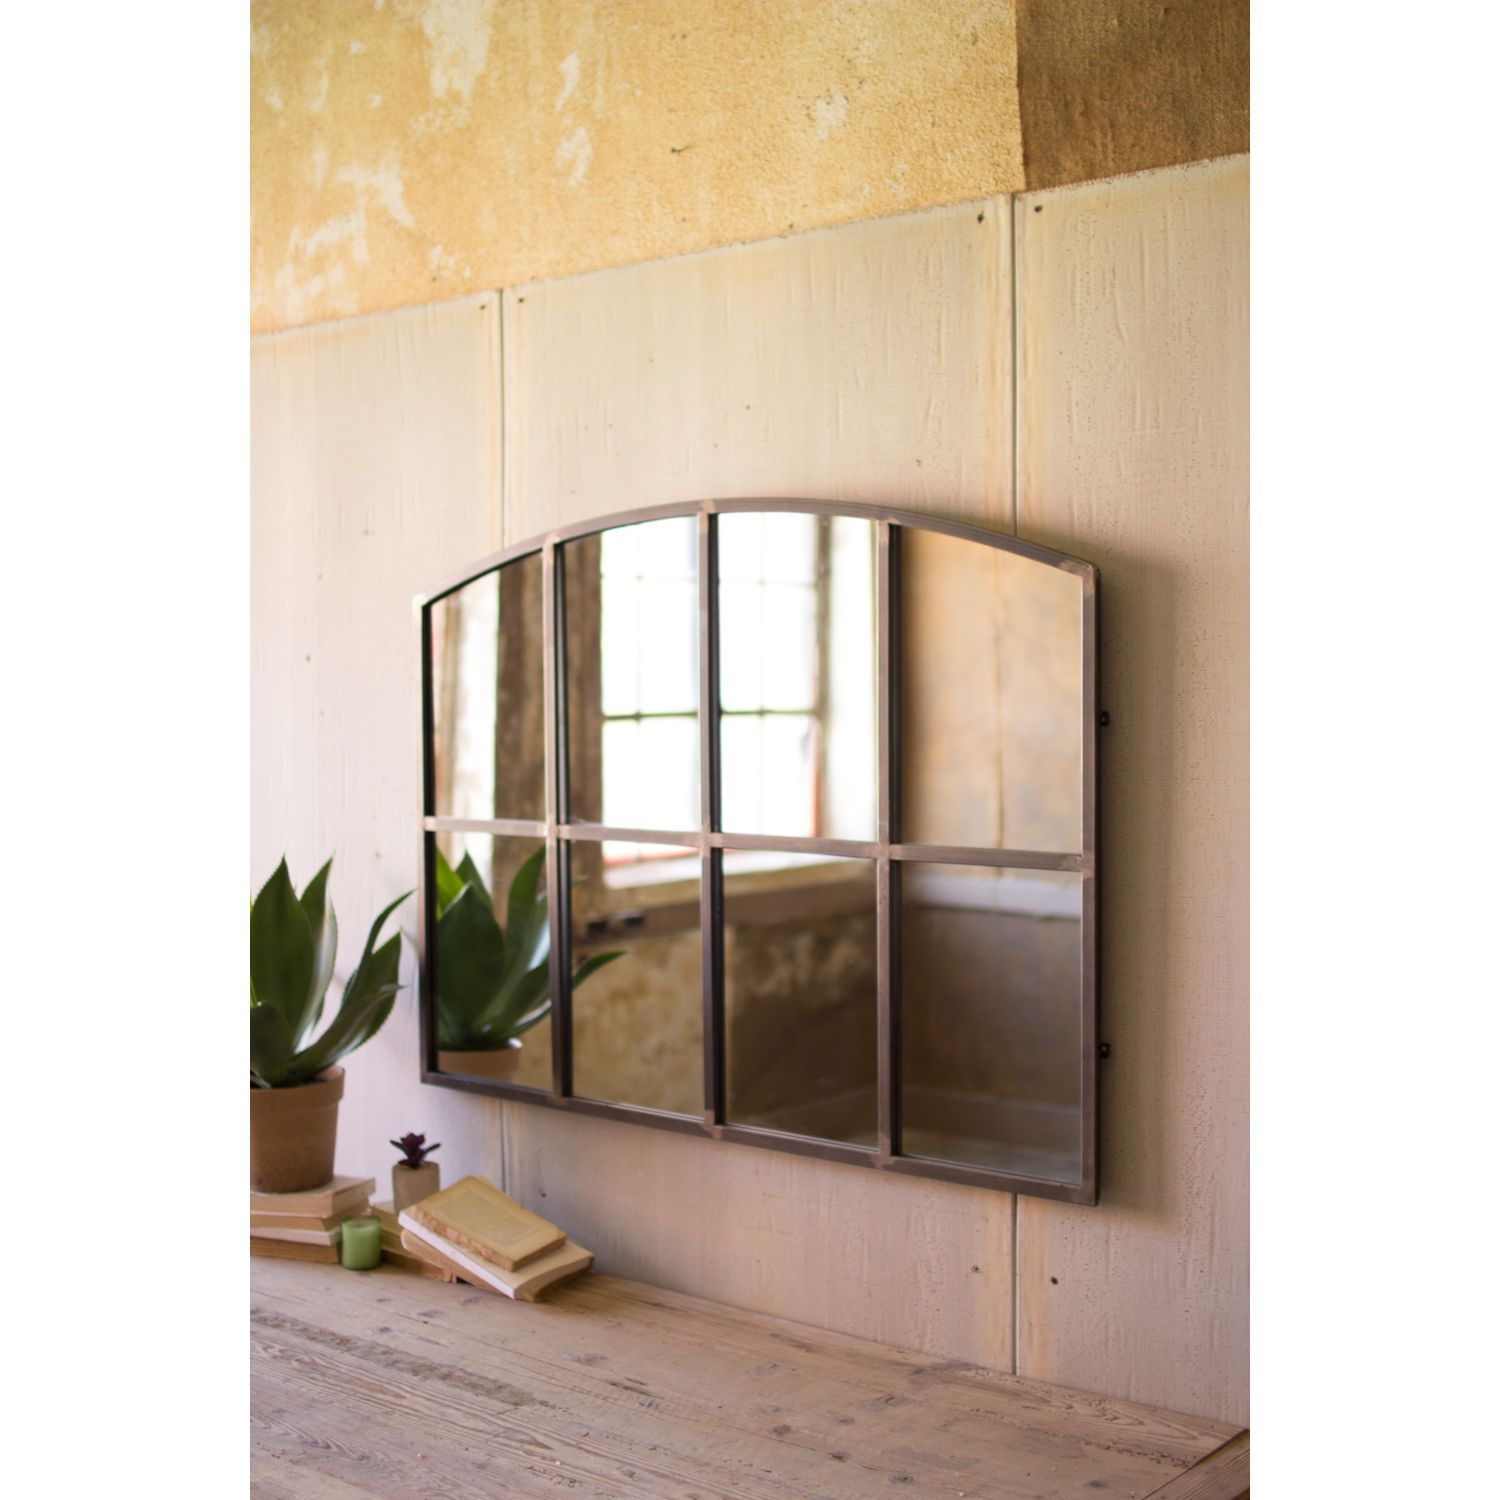 Kalalou Antique Galvanized 48 Inch Wall Mirror Chyk1119 Bellacor In 2021 Wall Mirror Decor Living Room Mirror Wall Large Wall Mirror